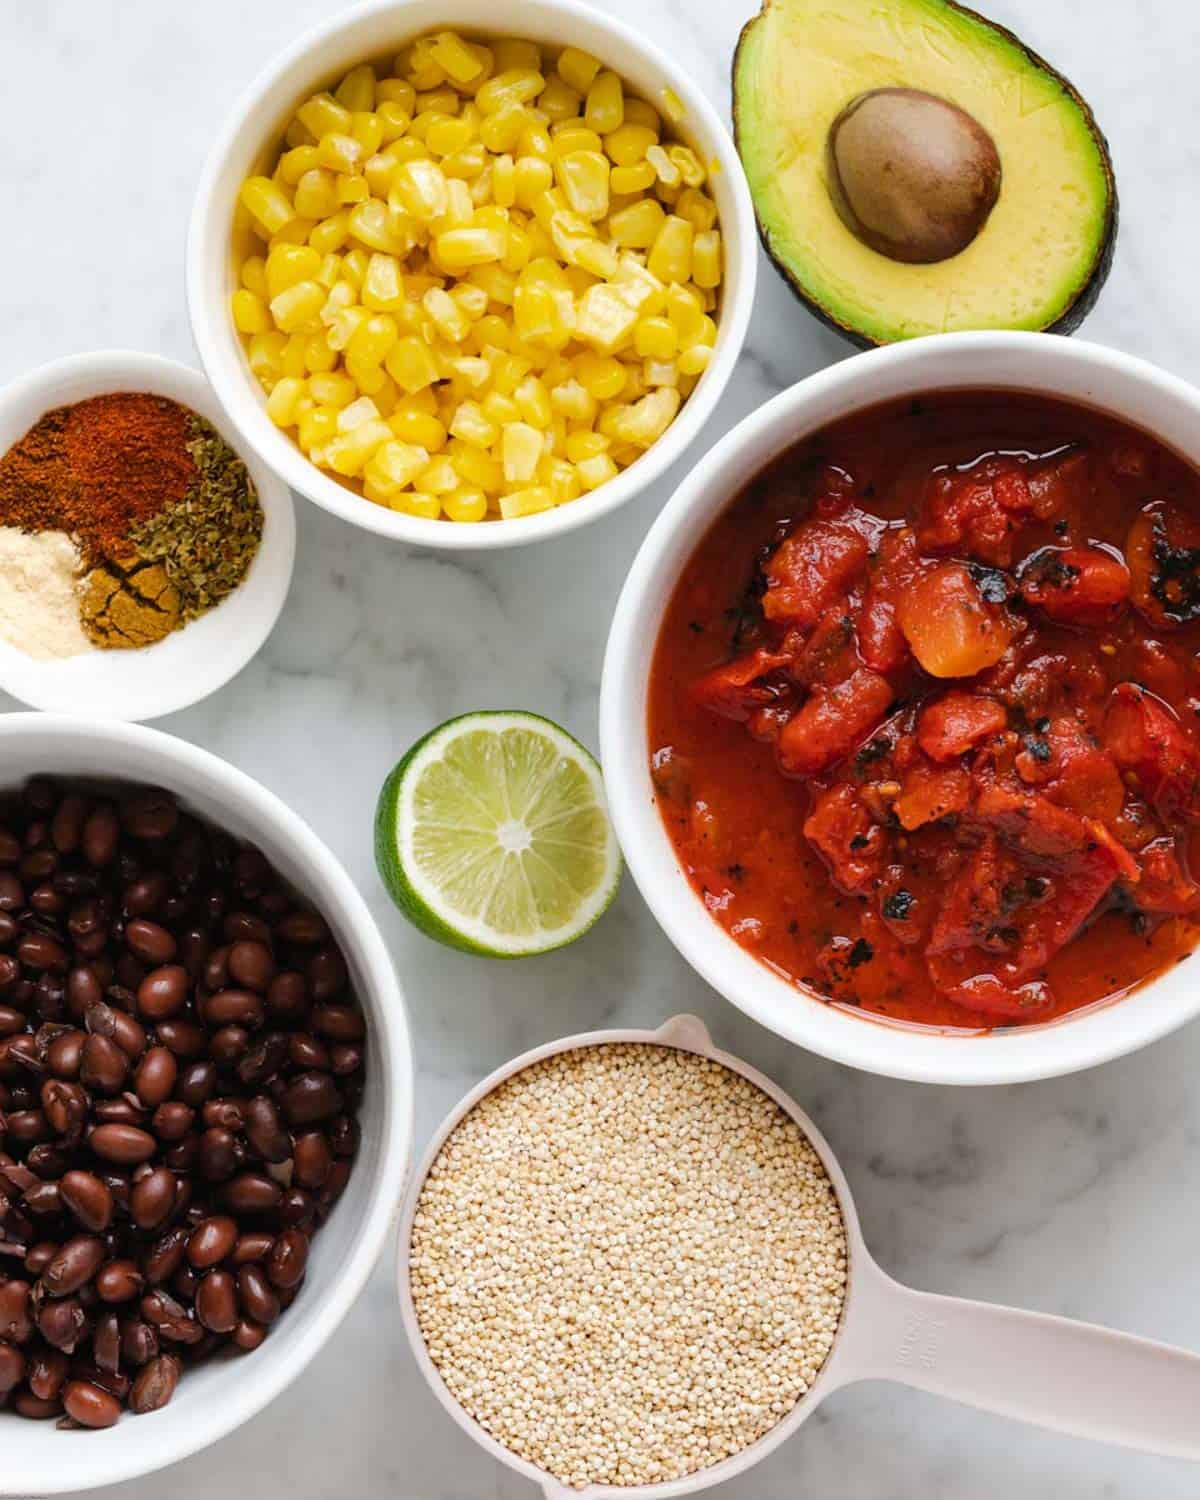 Ingredients for making Vegan Mexican Quinoa Bake: corn kernels, fire-roasted diced tomatoes, spices, black beans, quinoa, avocado and fresh lime juice.